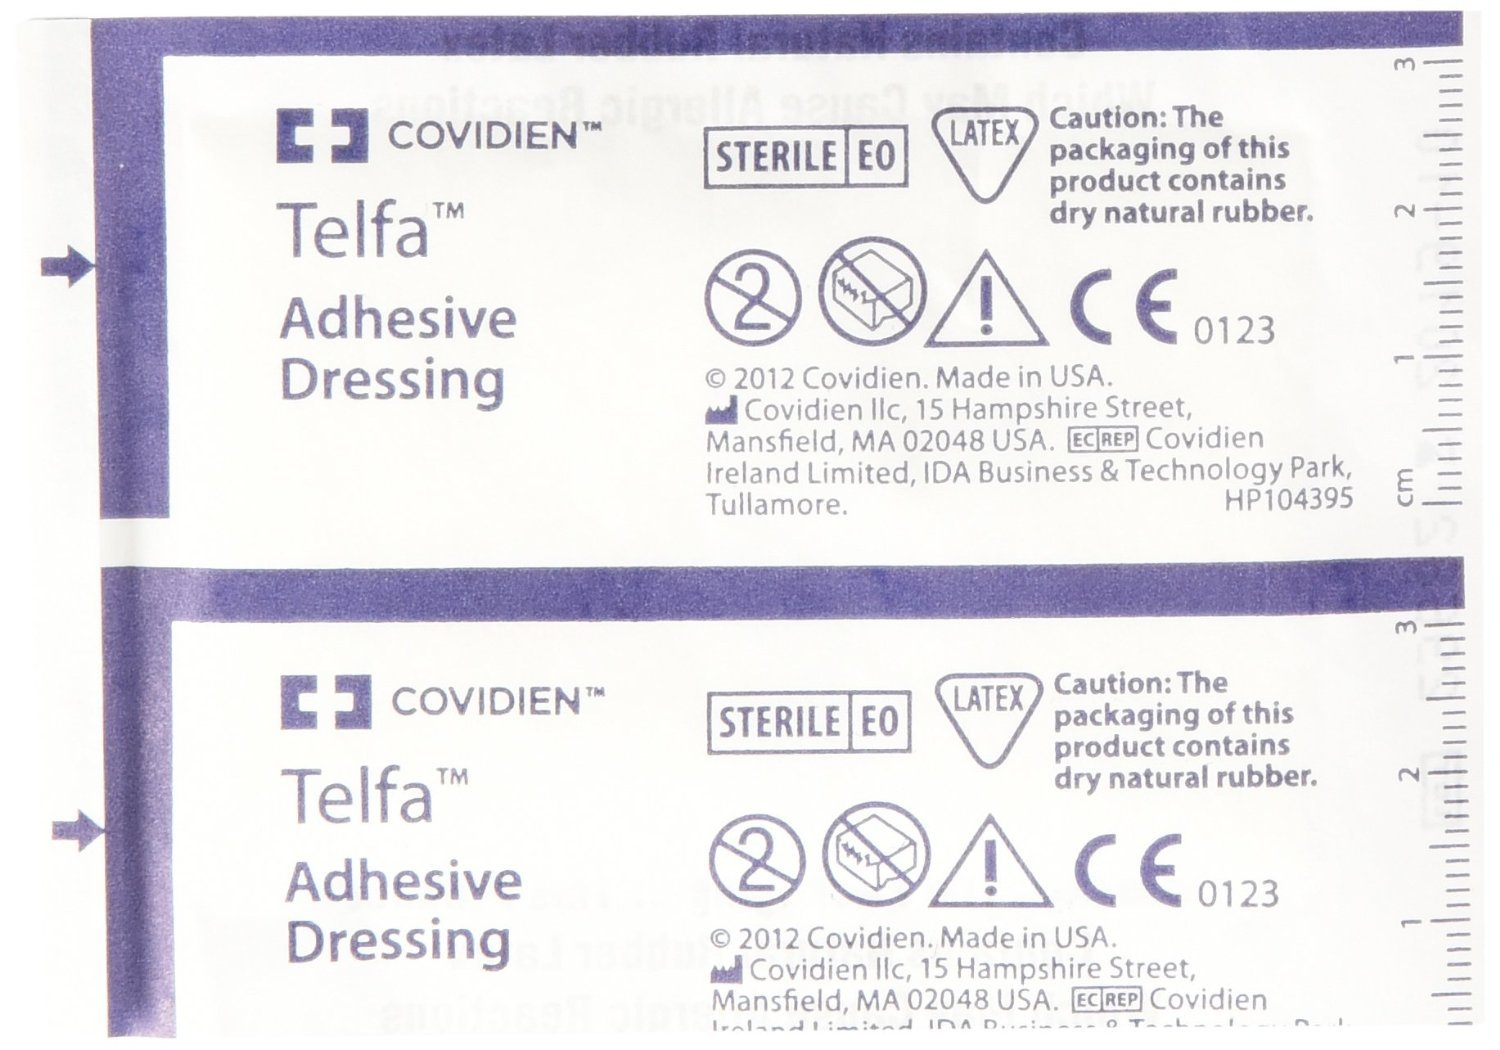 MCK60172000 - Adhesive Dressing Telfa 2 X 3 Inch 100% Cotton Rectangle Clear Sterile